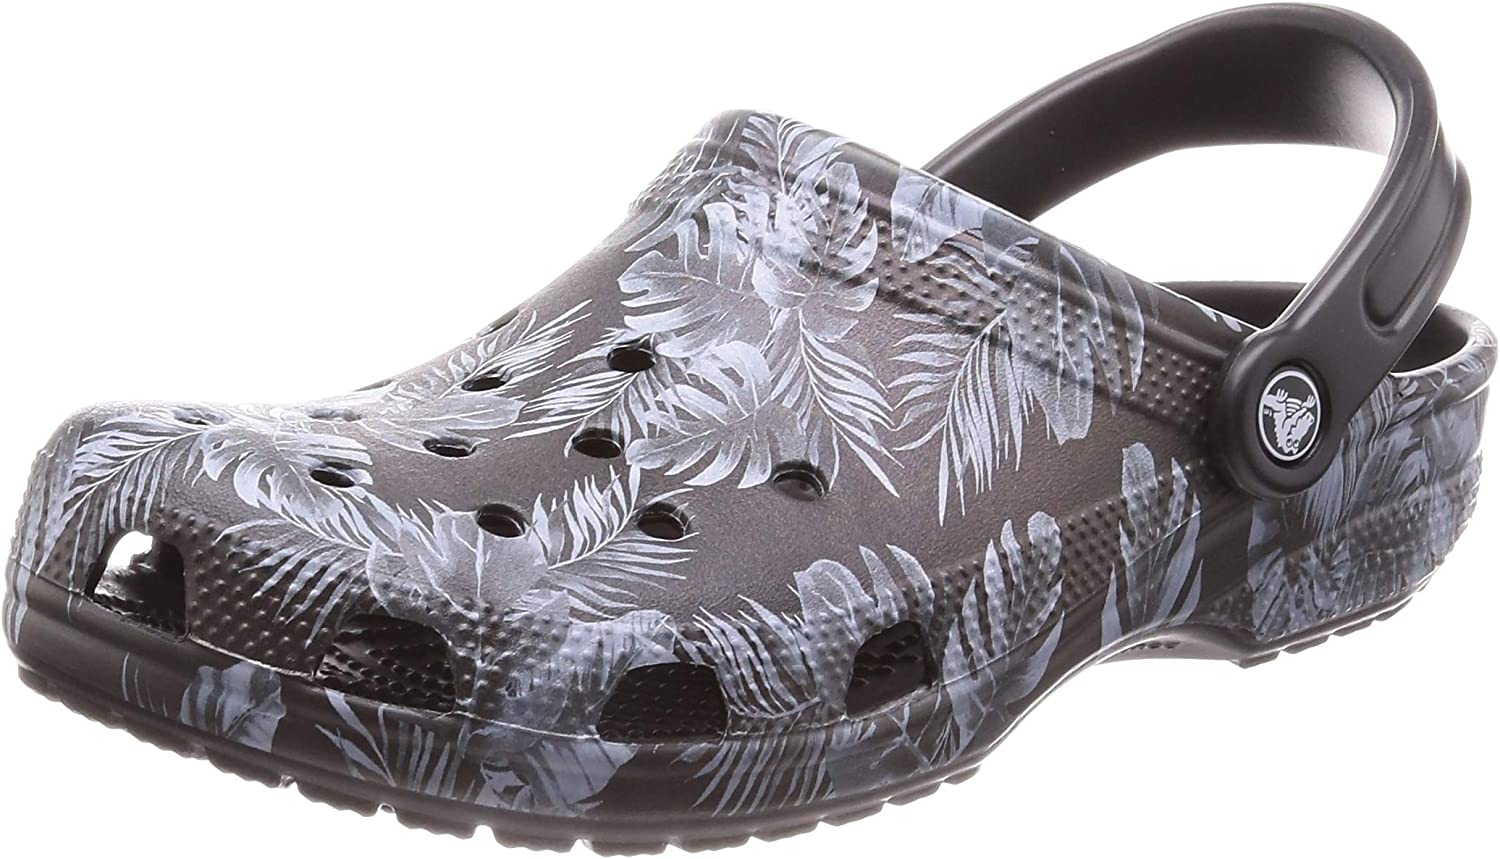 Crocs Men's and Women's Classic Graphic Clog   Comfort Slip On Casual Water shoes   Lightweight